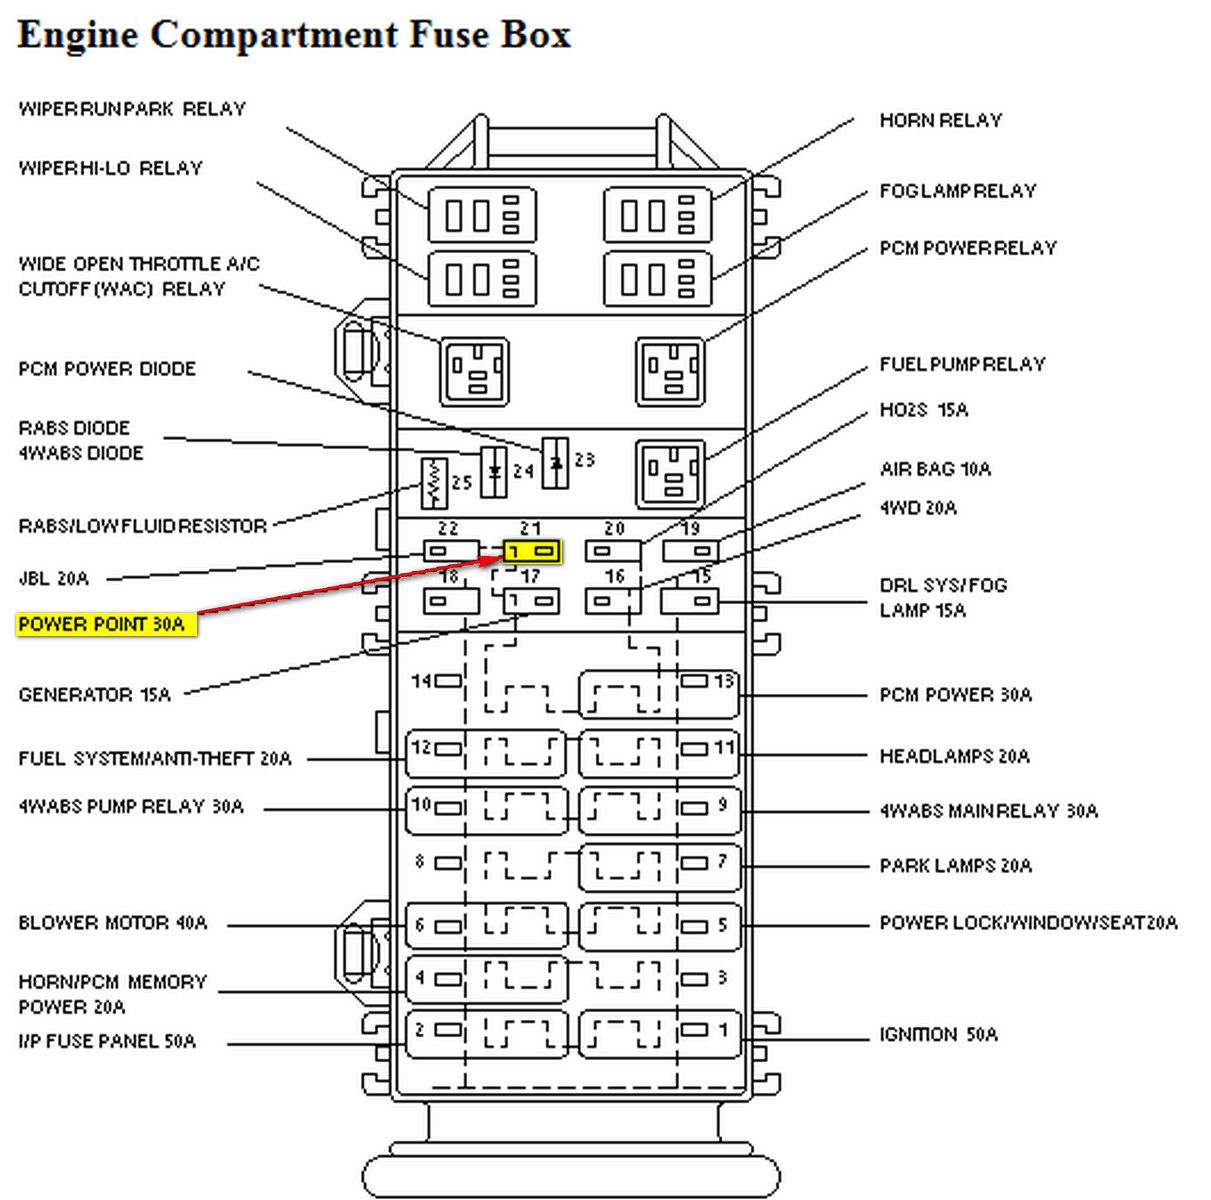 1997 ford explorer headlight fuse box diagram wiring diagrams scematic 1997 ford explorer xlt 4x4 1997 ford explorer diagram [ 1211 x 1200 Pixel ]